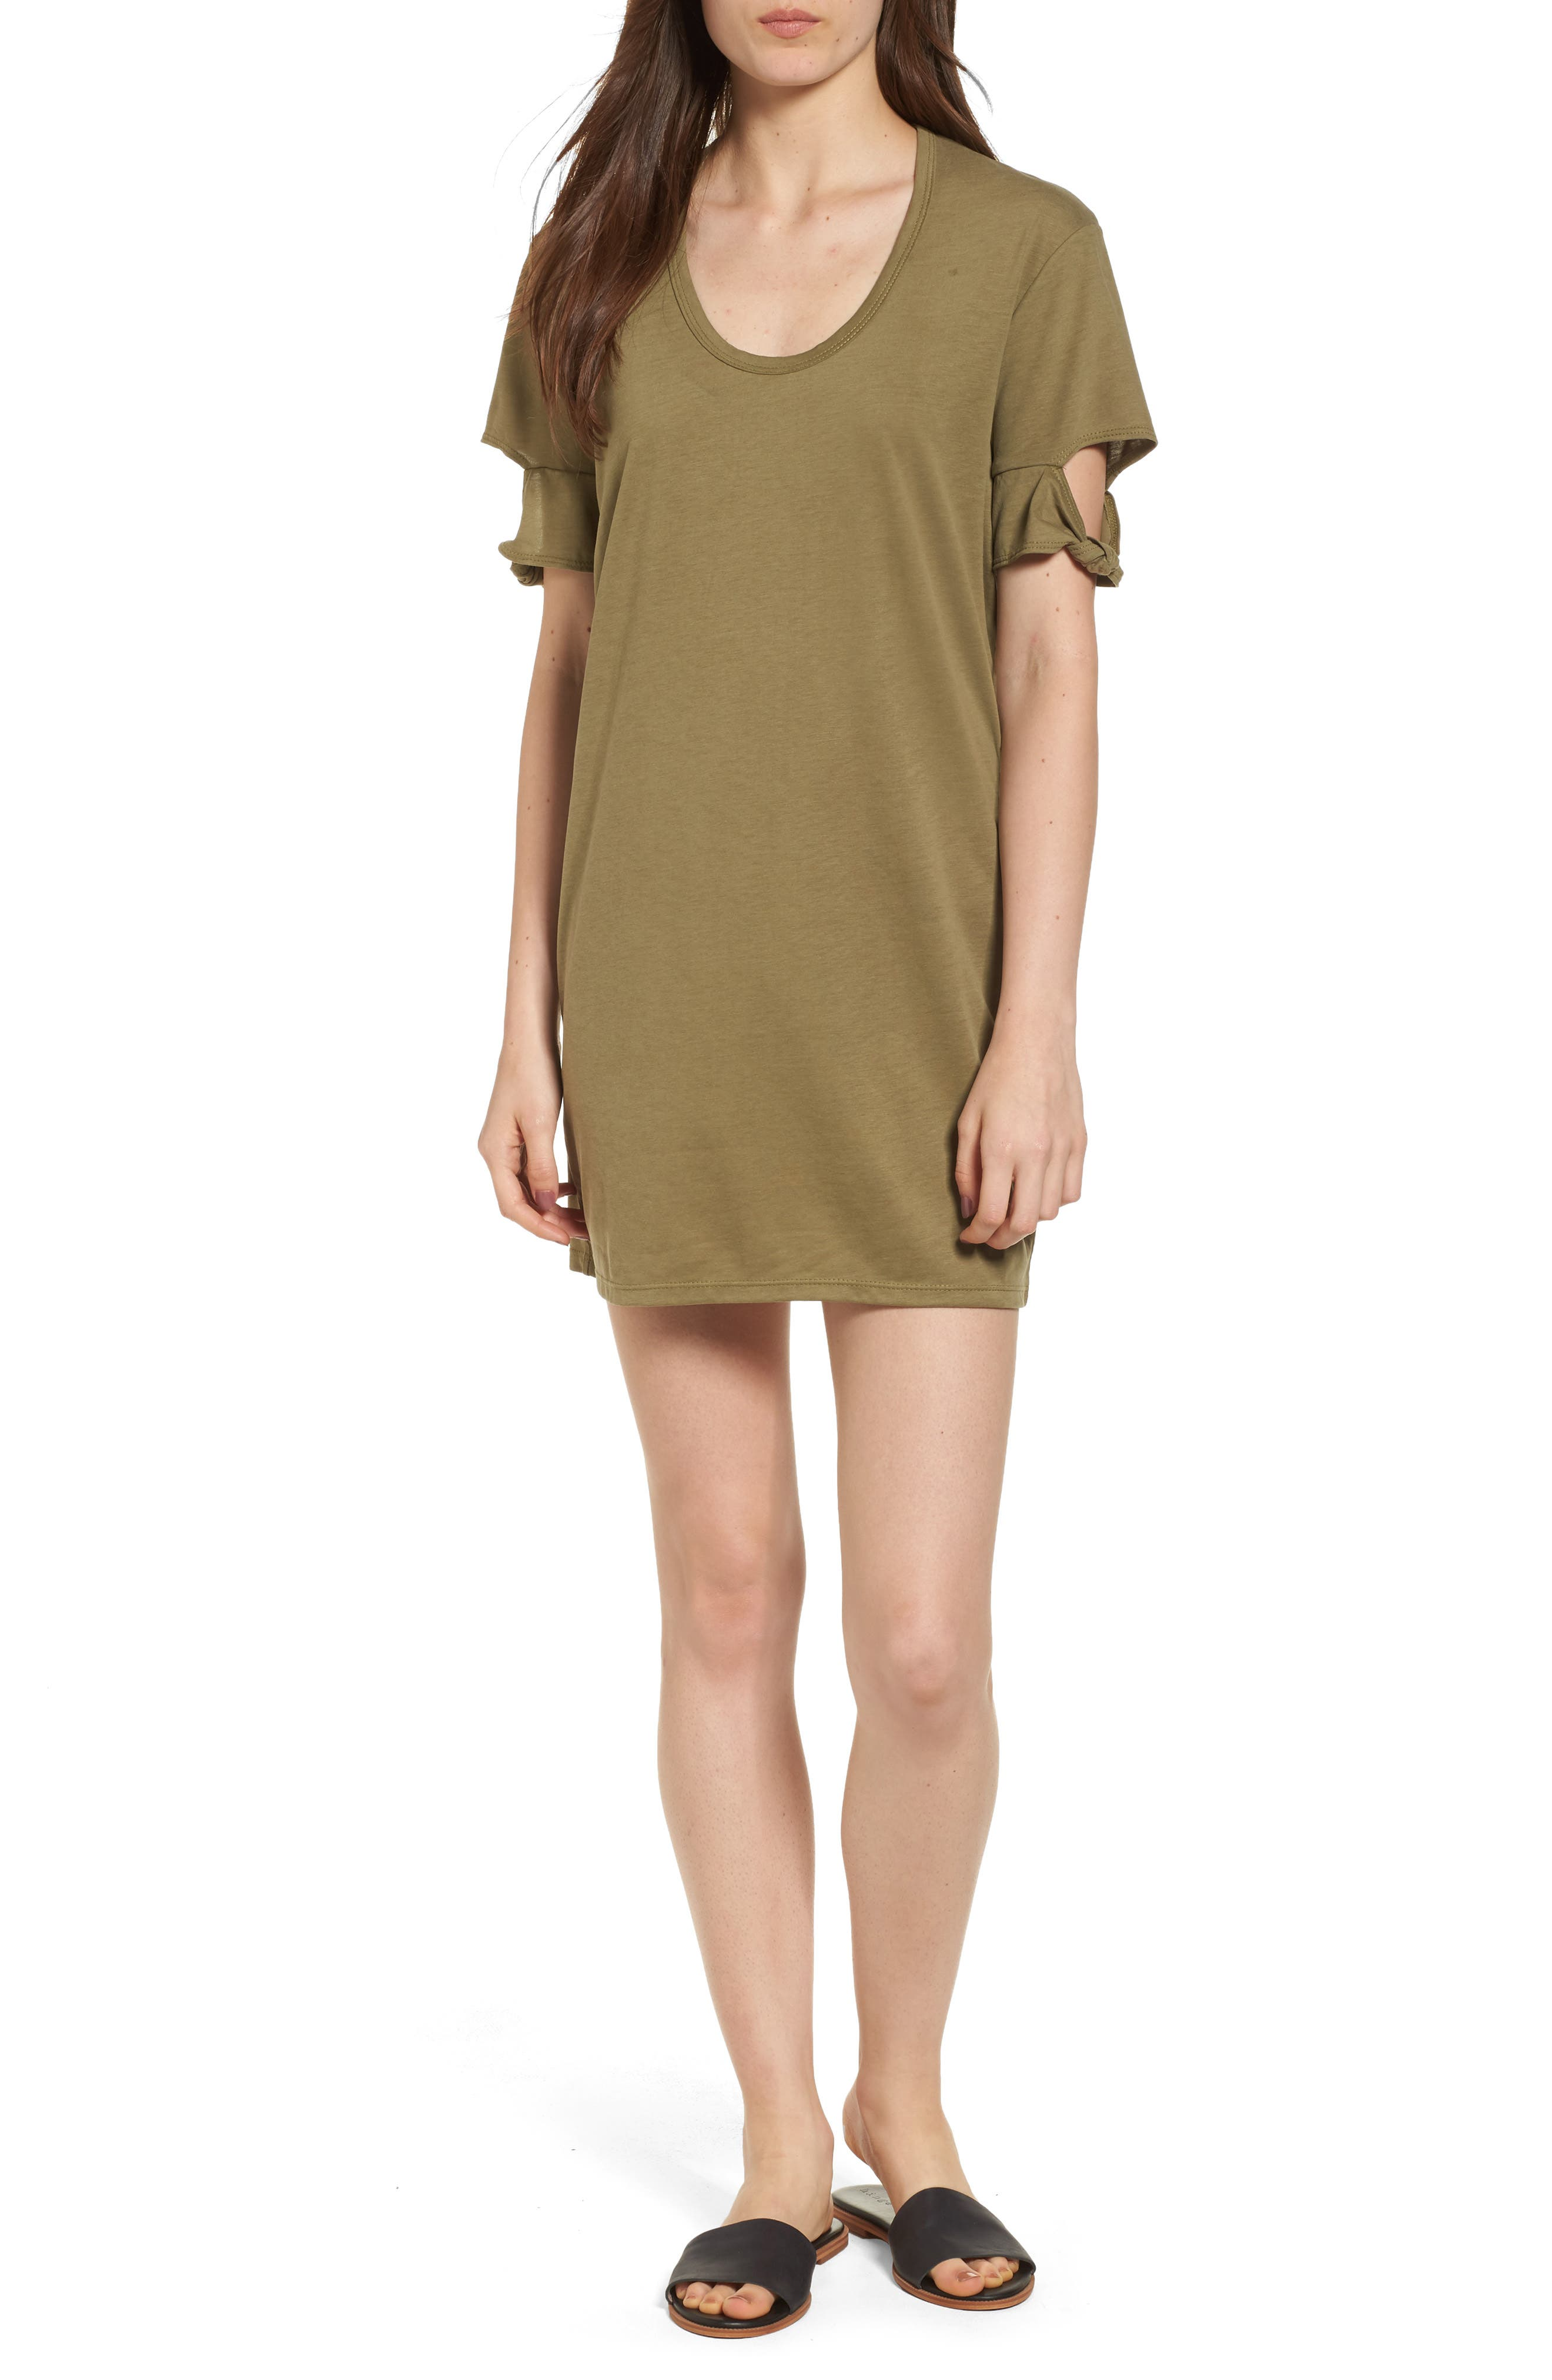 Alternate Image 1 Selected - PST by Project Social T Knotted Sleeve T-Shirt Dress